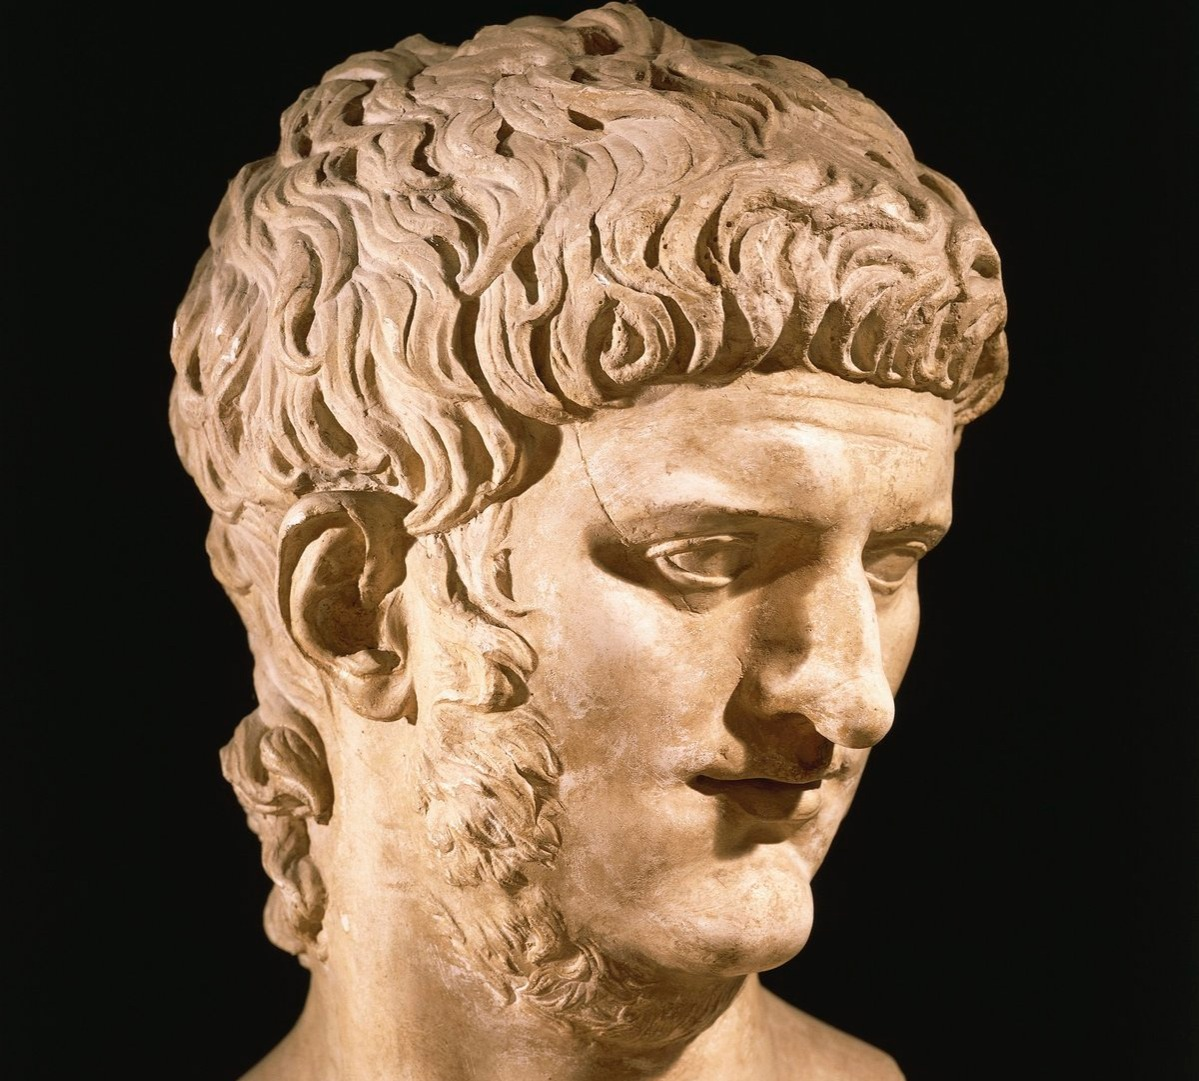 emperor nero real face reveal